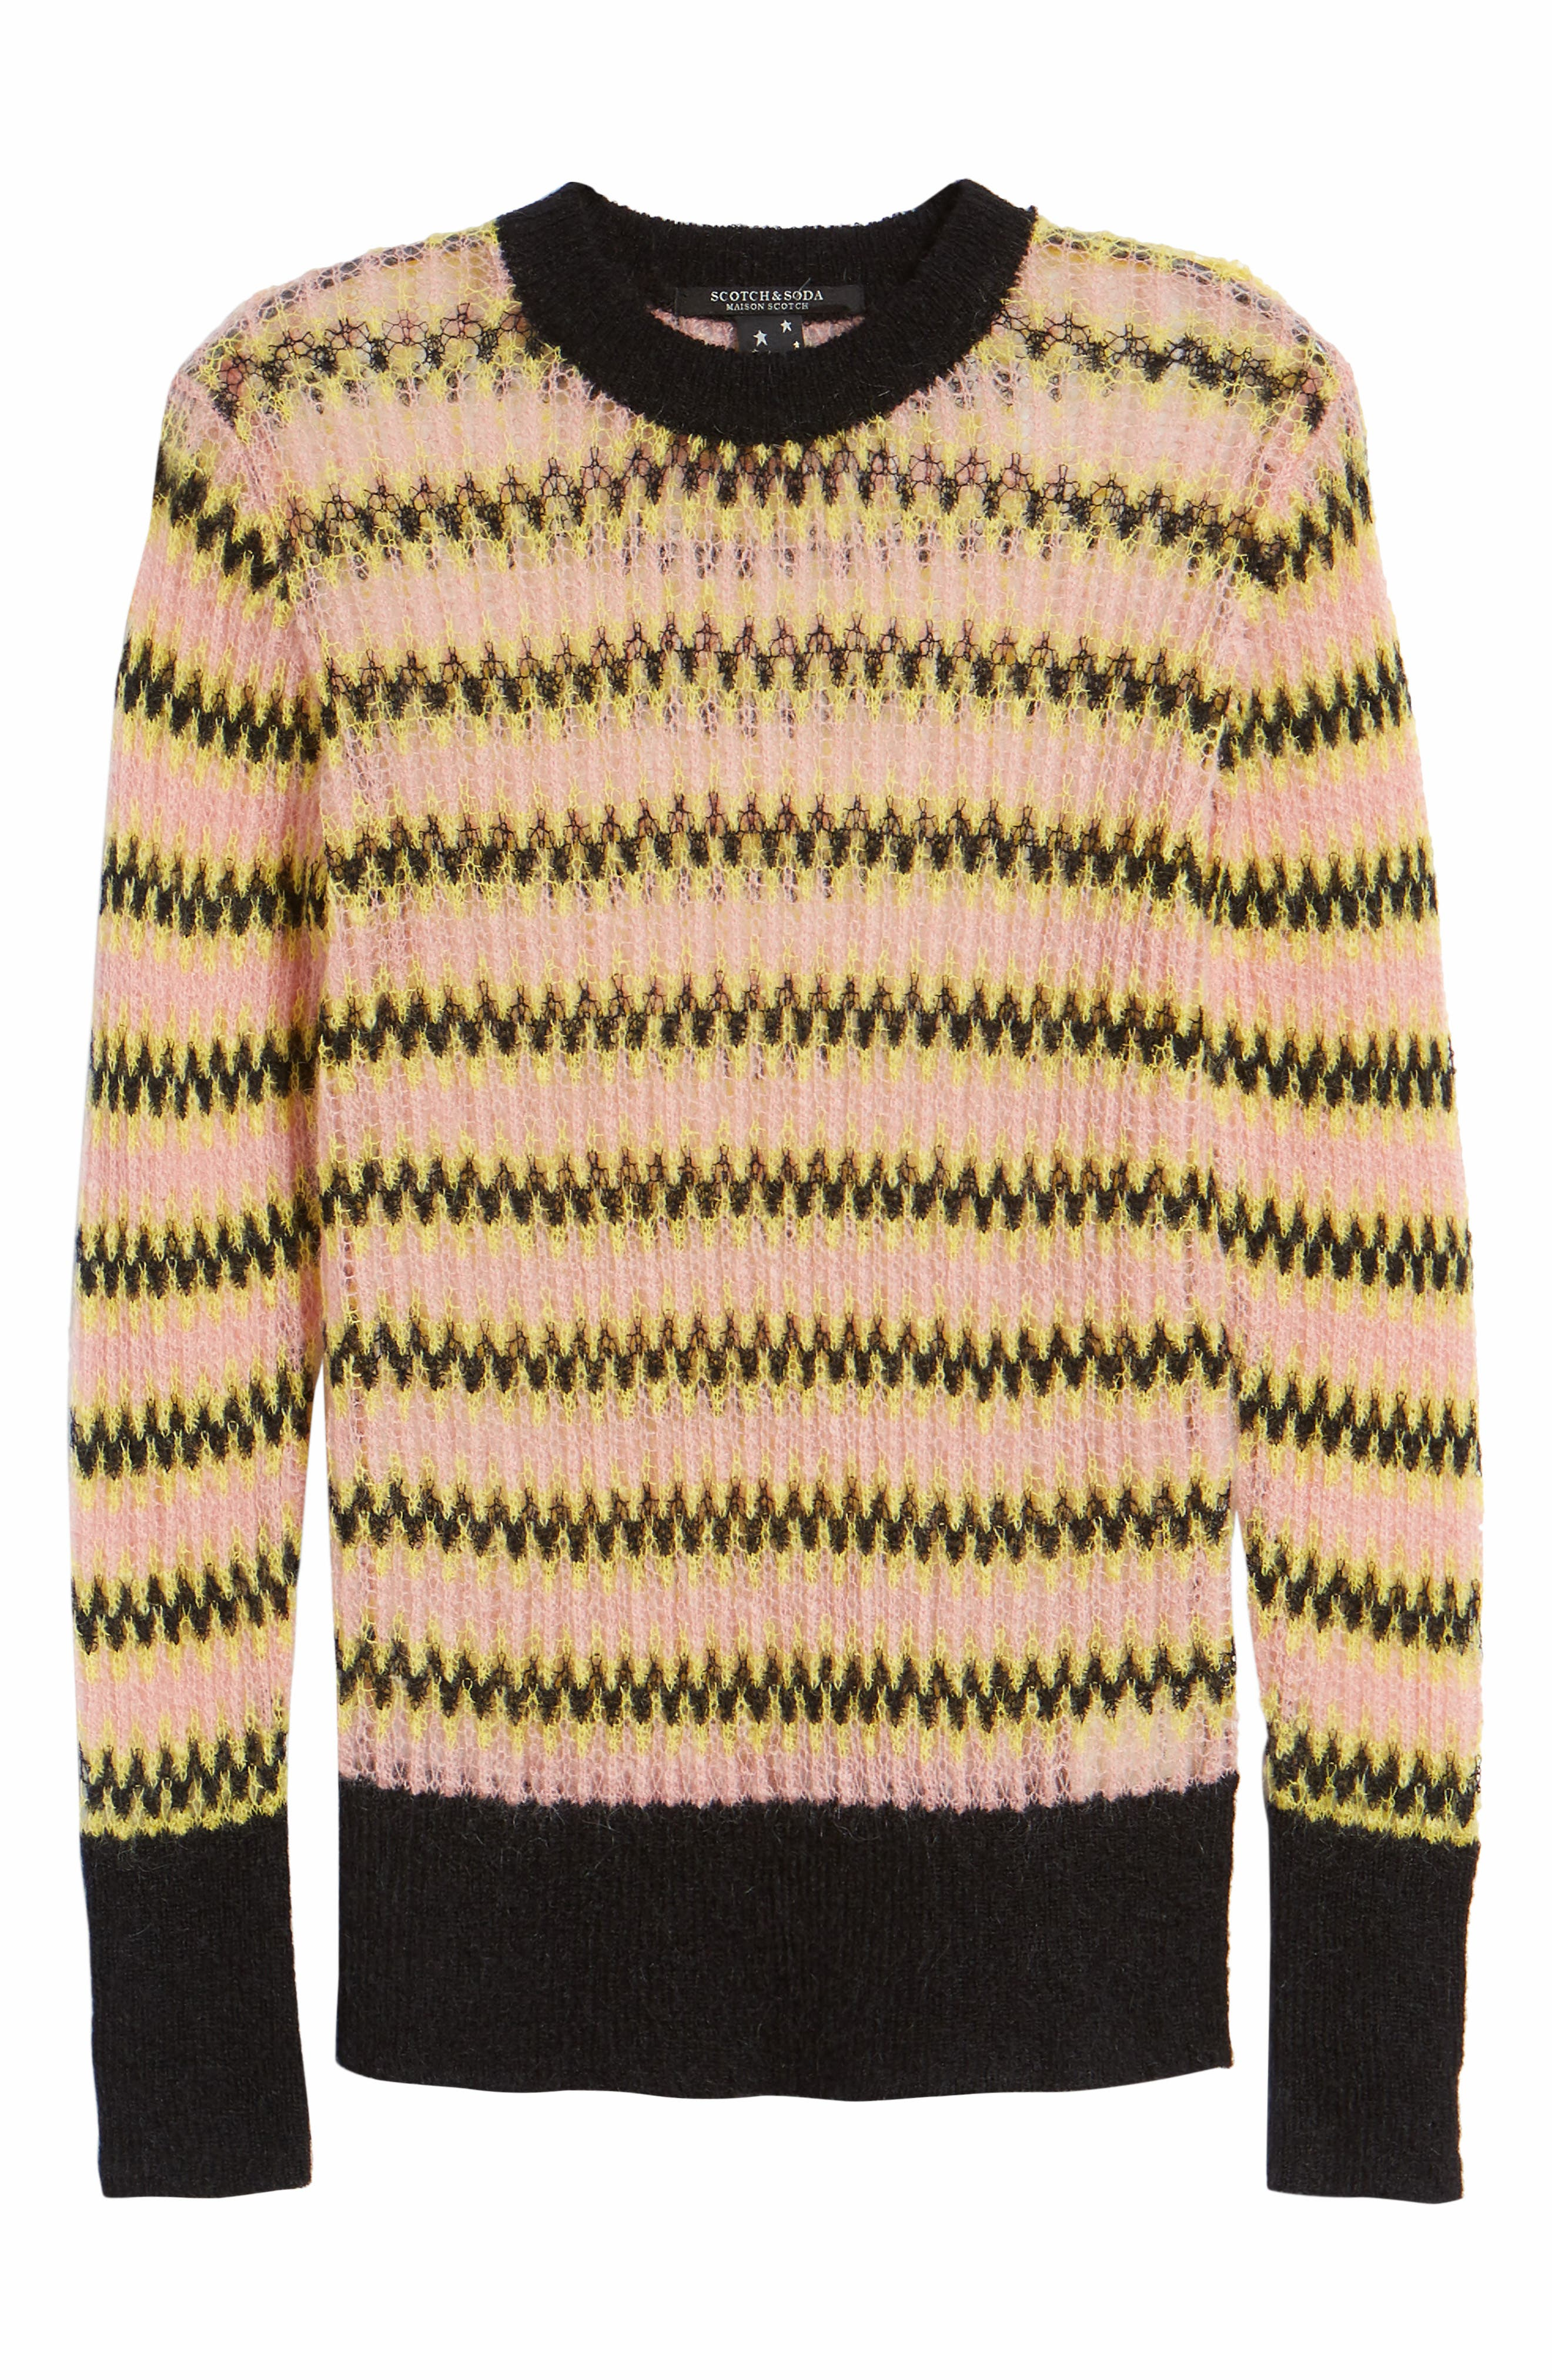 Zig Zag Wool Blend Sweater,                             Alternate thumbnail 6, color,                             700